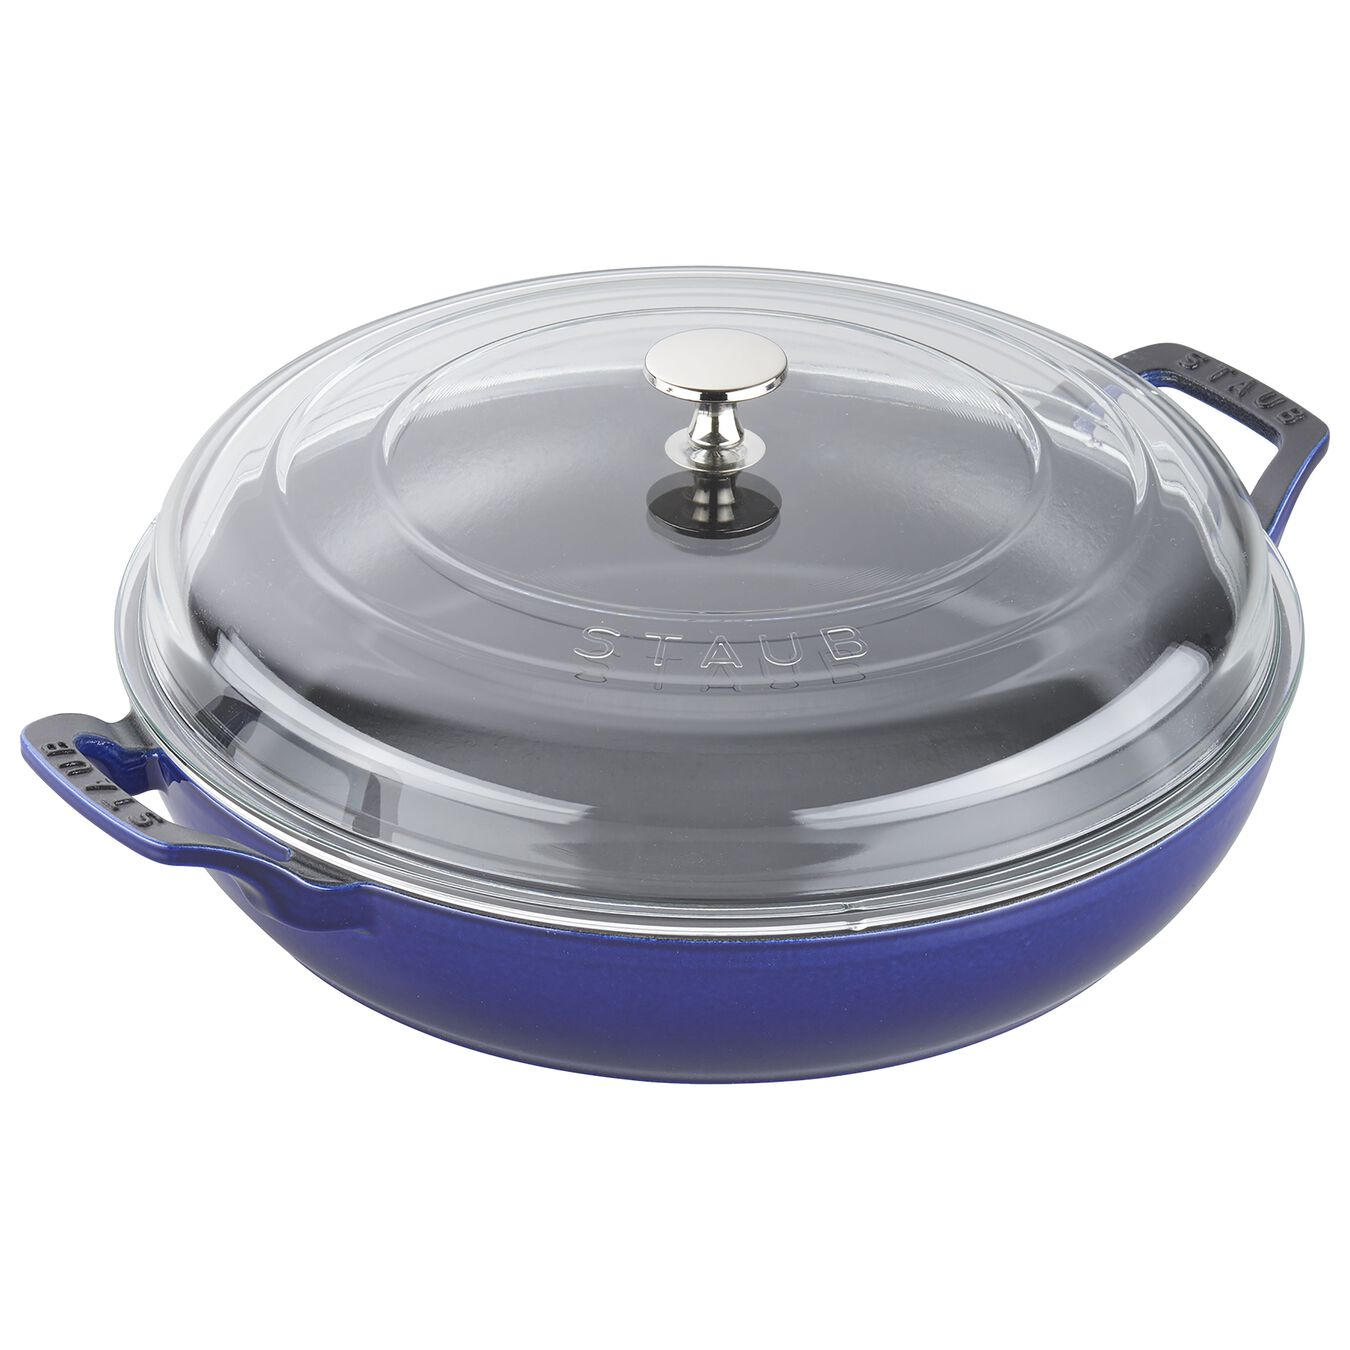 12-inch, Saute pan with glass lid, dark blue,,large 1